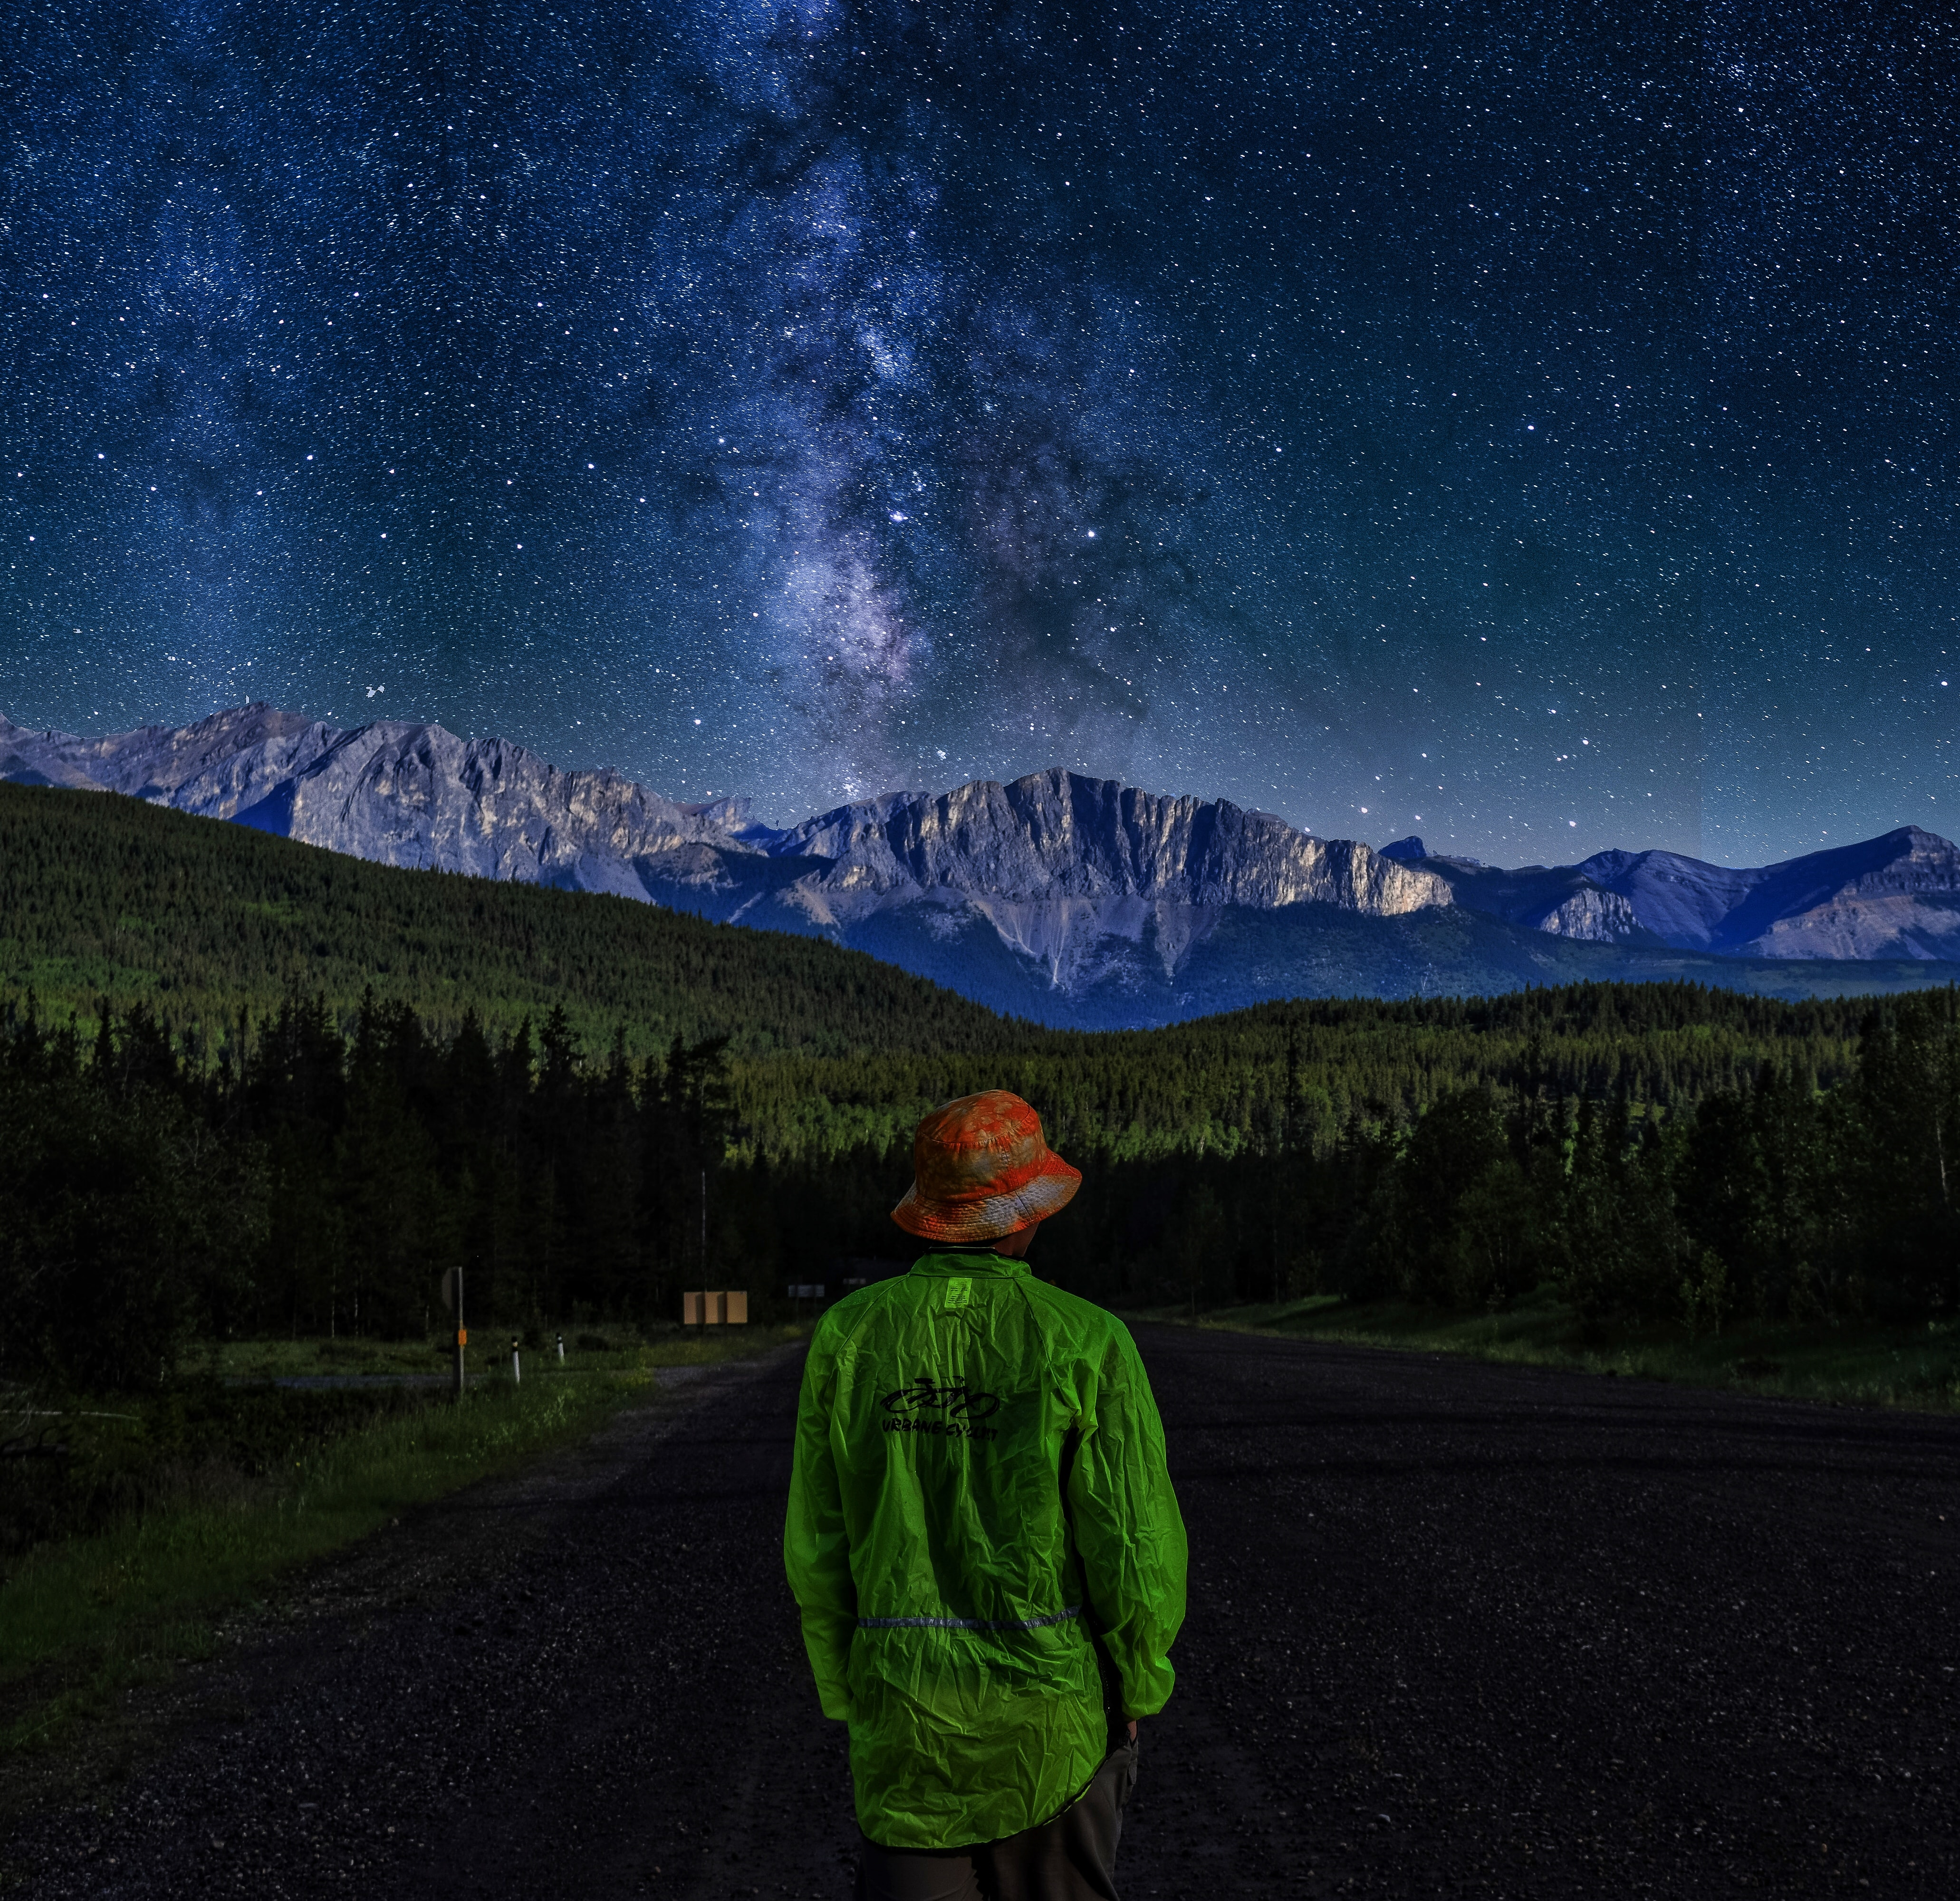 person wearing green sweater standing near the house during nighttime illustration